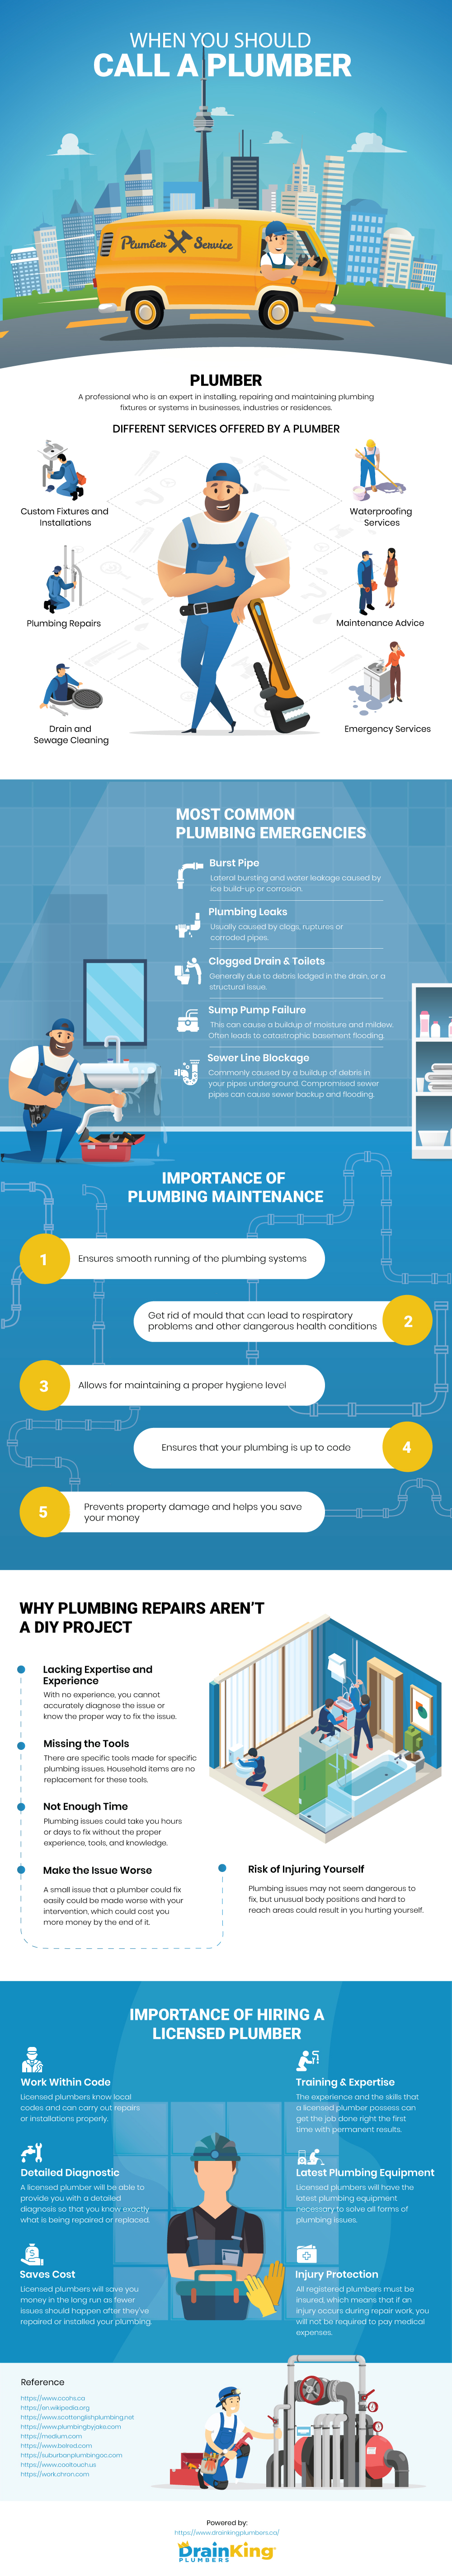 When You Should Call A Plumber